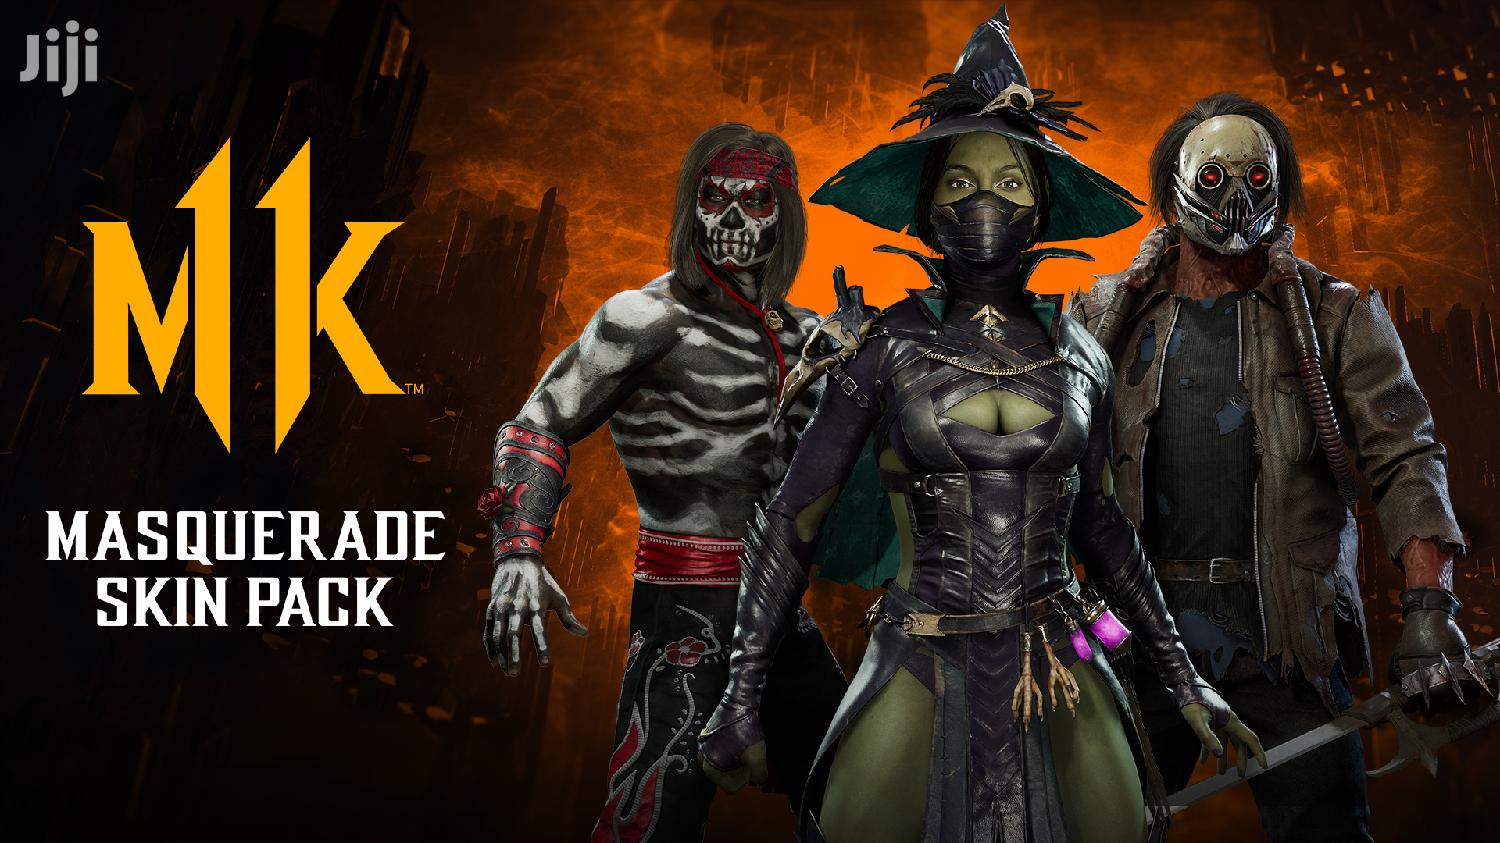 Mortal Kombat 11 For Pc | Video Games for sale in Kokomlemle, Greater Accra, Ghana